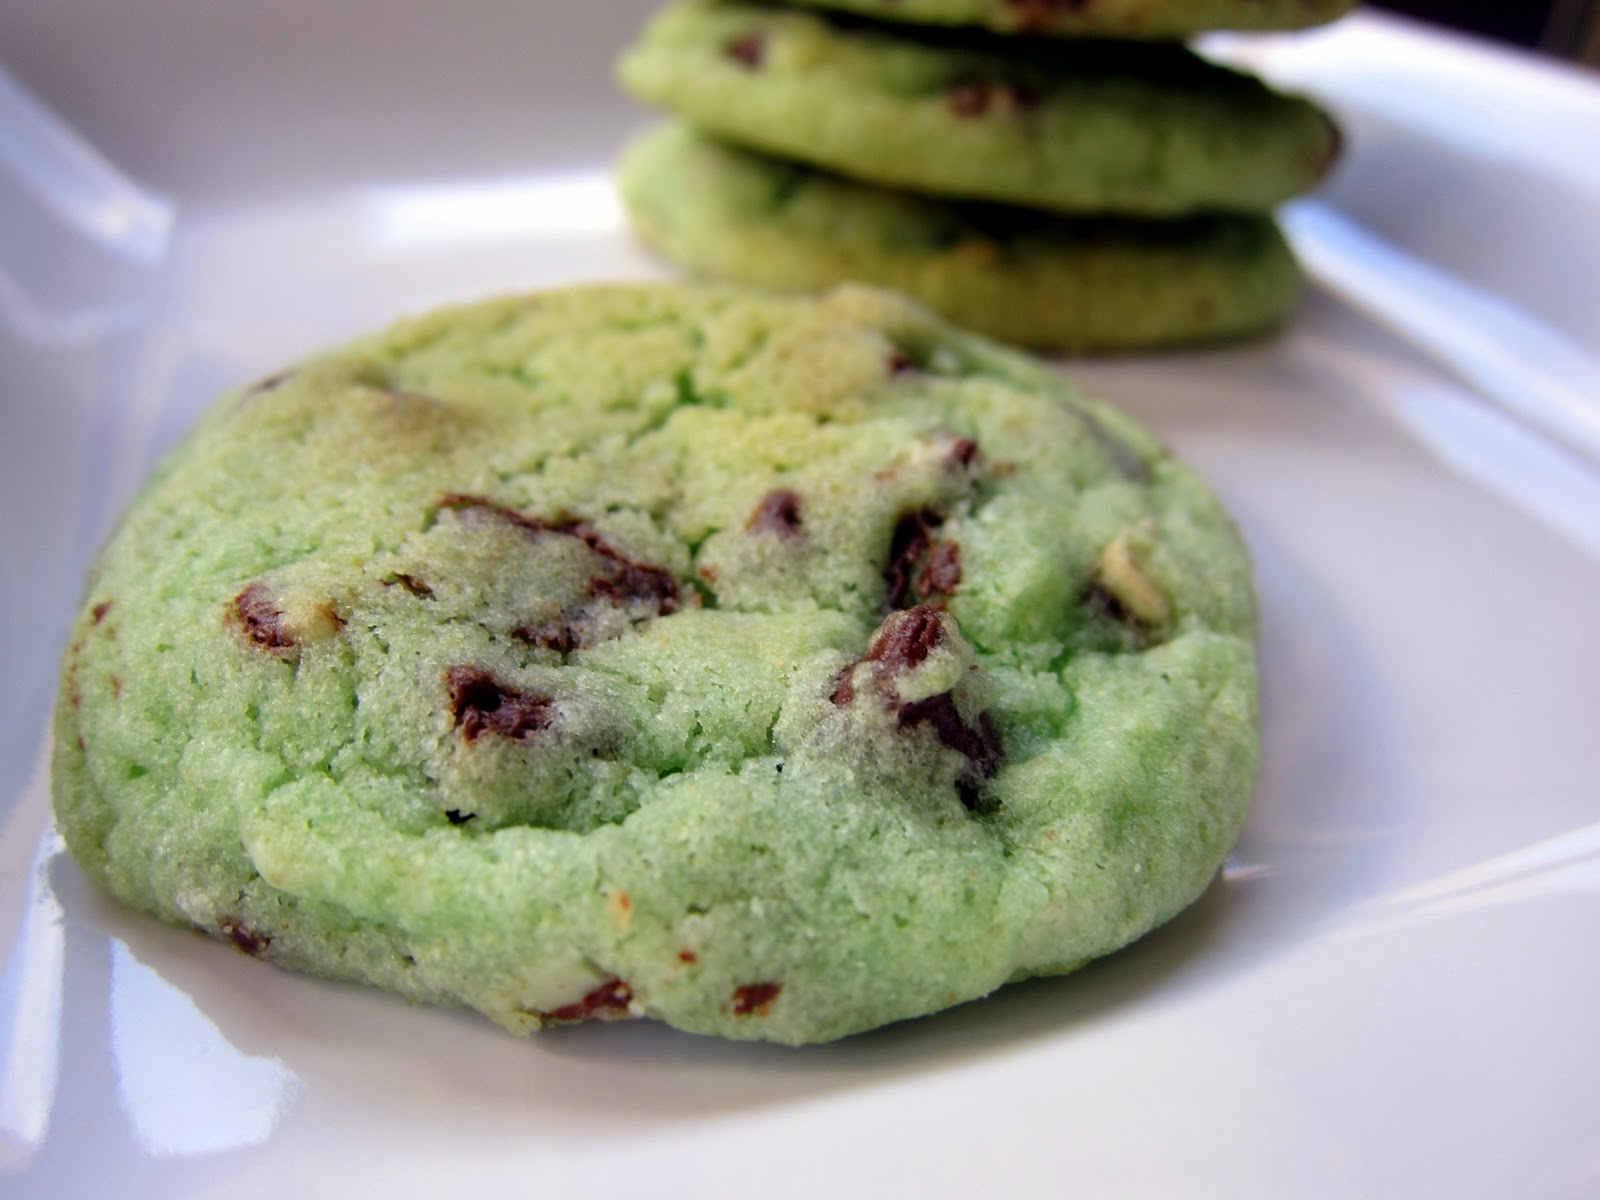 Green Mint Chocolate Chip Cookies From Scratch